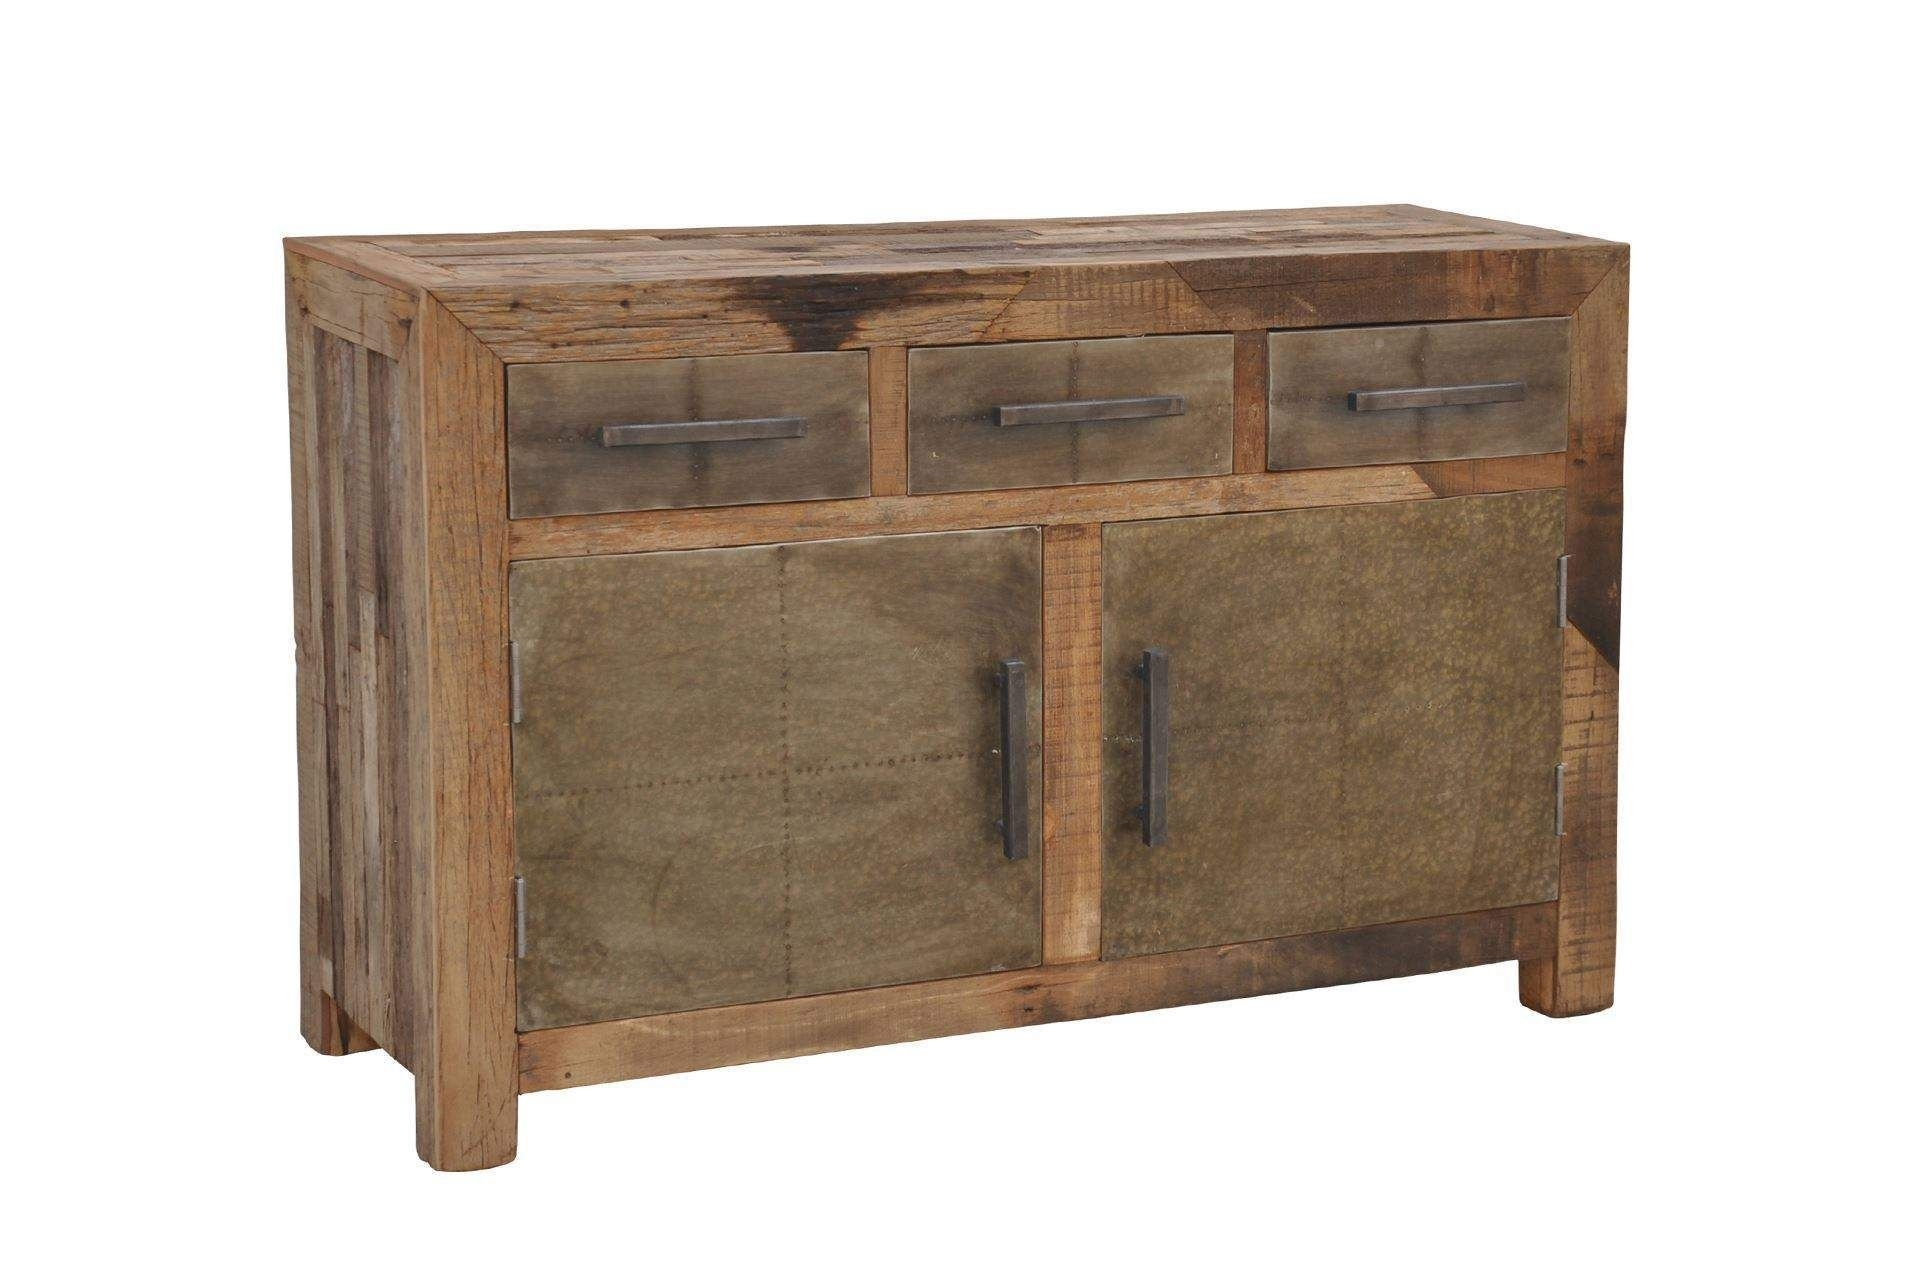 Otb Akash 3-Drawer/2-Door Sideboard | Country Rustic/farm Decor with Reclaimed Pine Turquoise 4-Door Sideboards (Image 18 of 30)